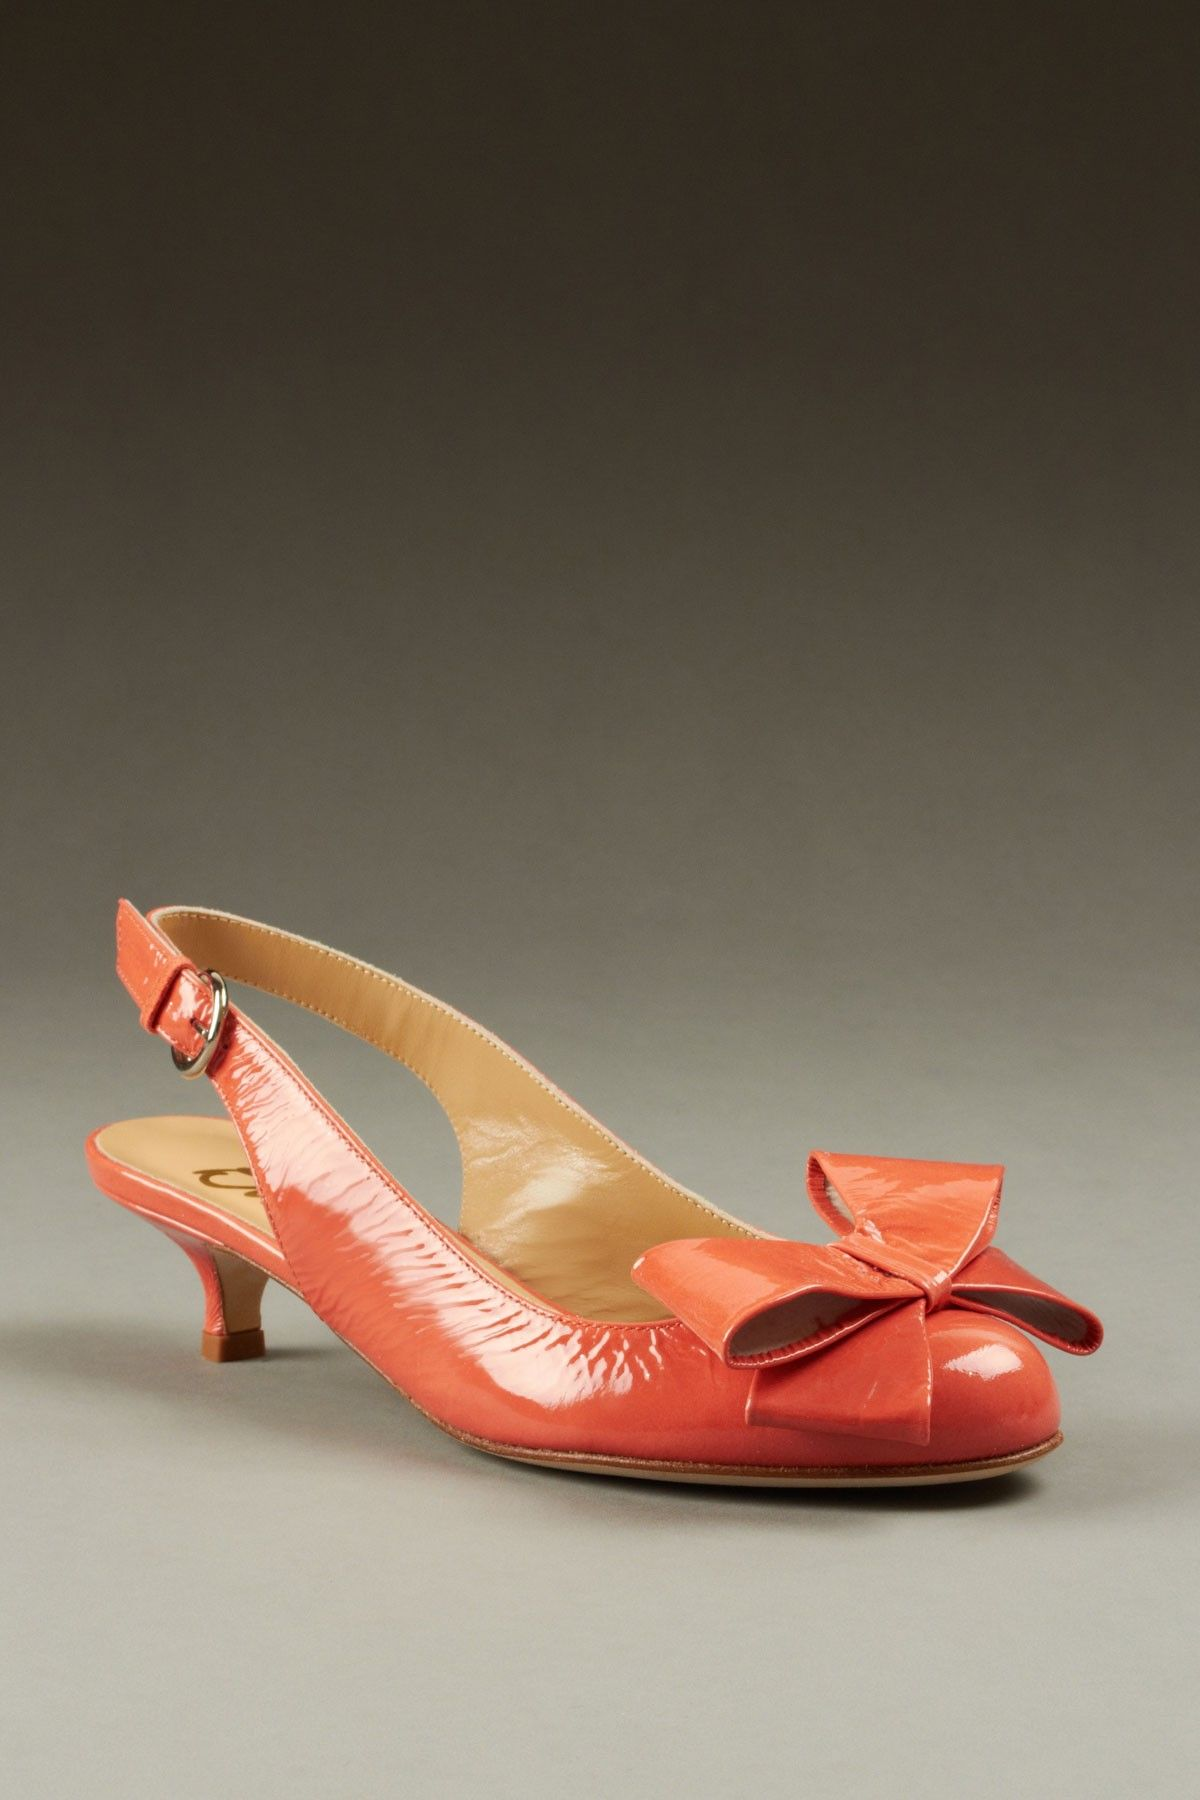 bdb4df657ca9d Tibi   Butter Slingback Kitten Heel on sale for  149  love that retro bow